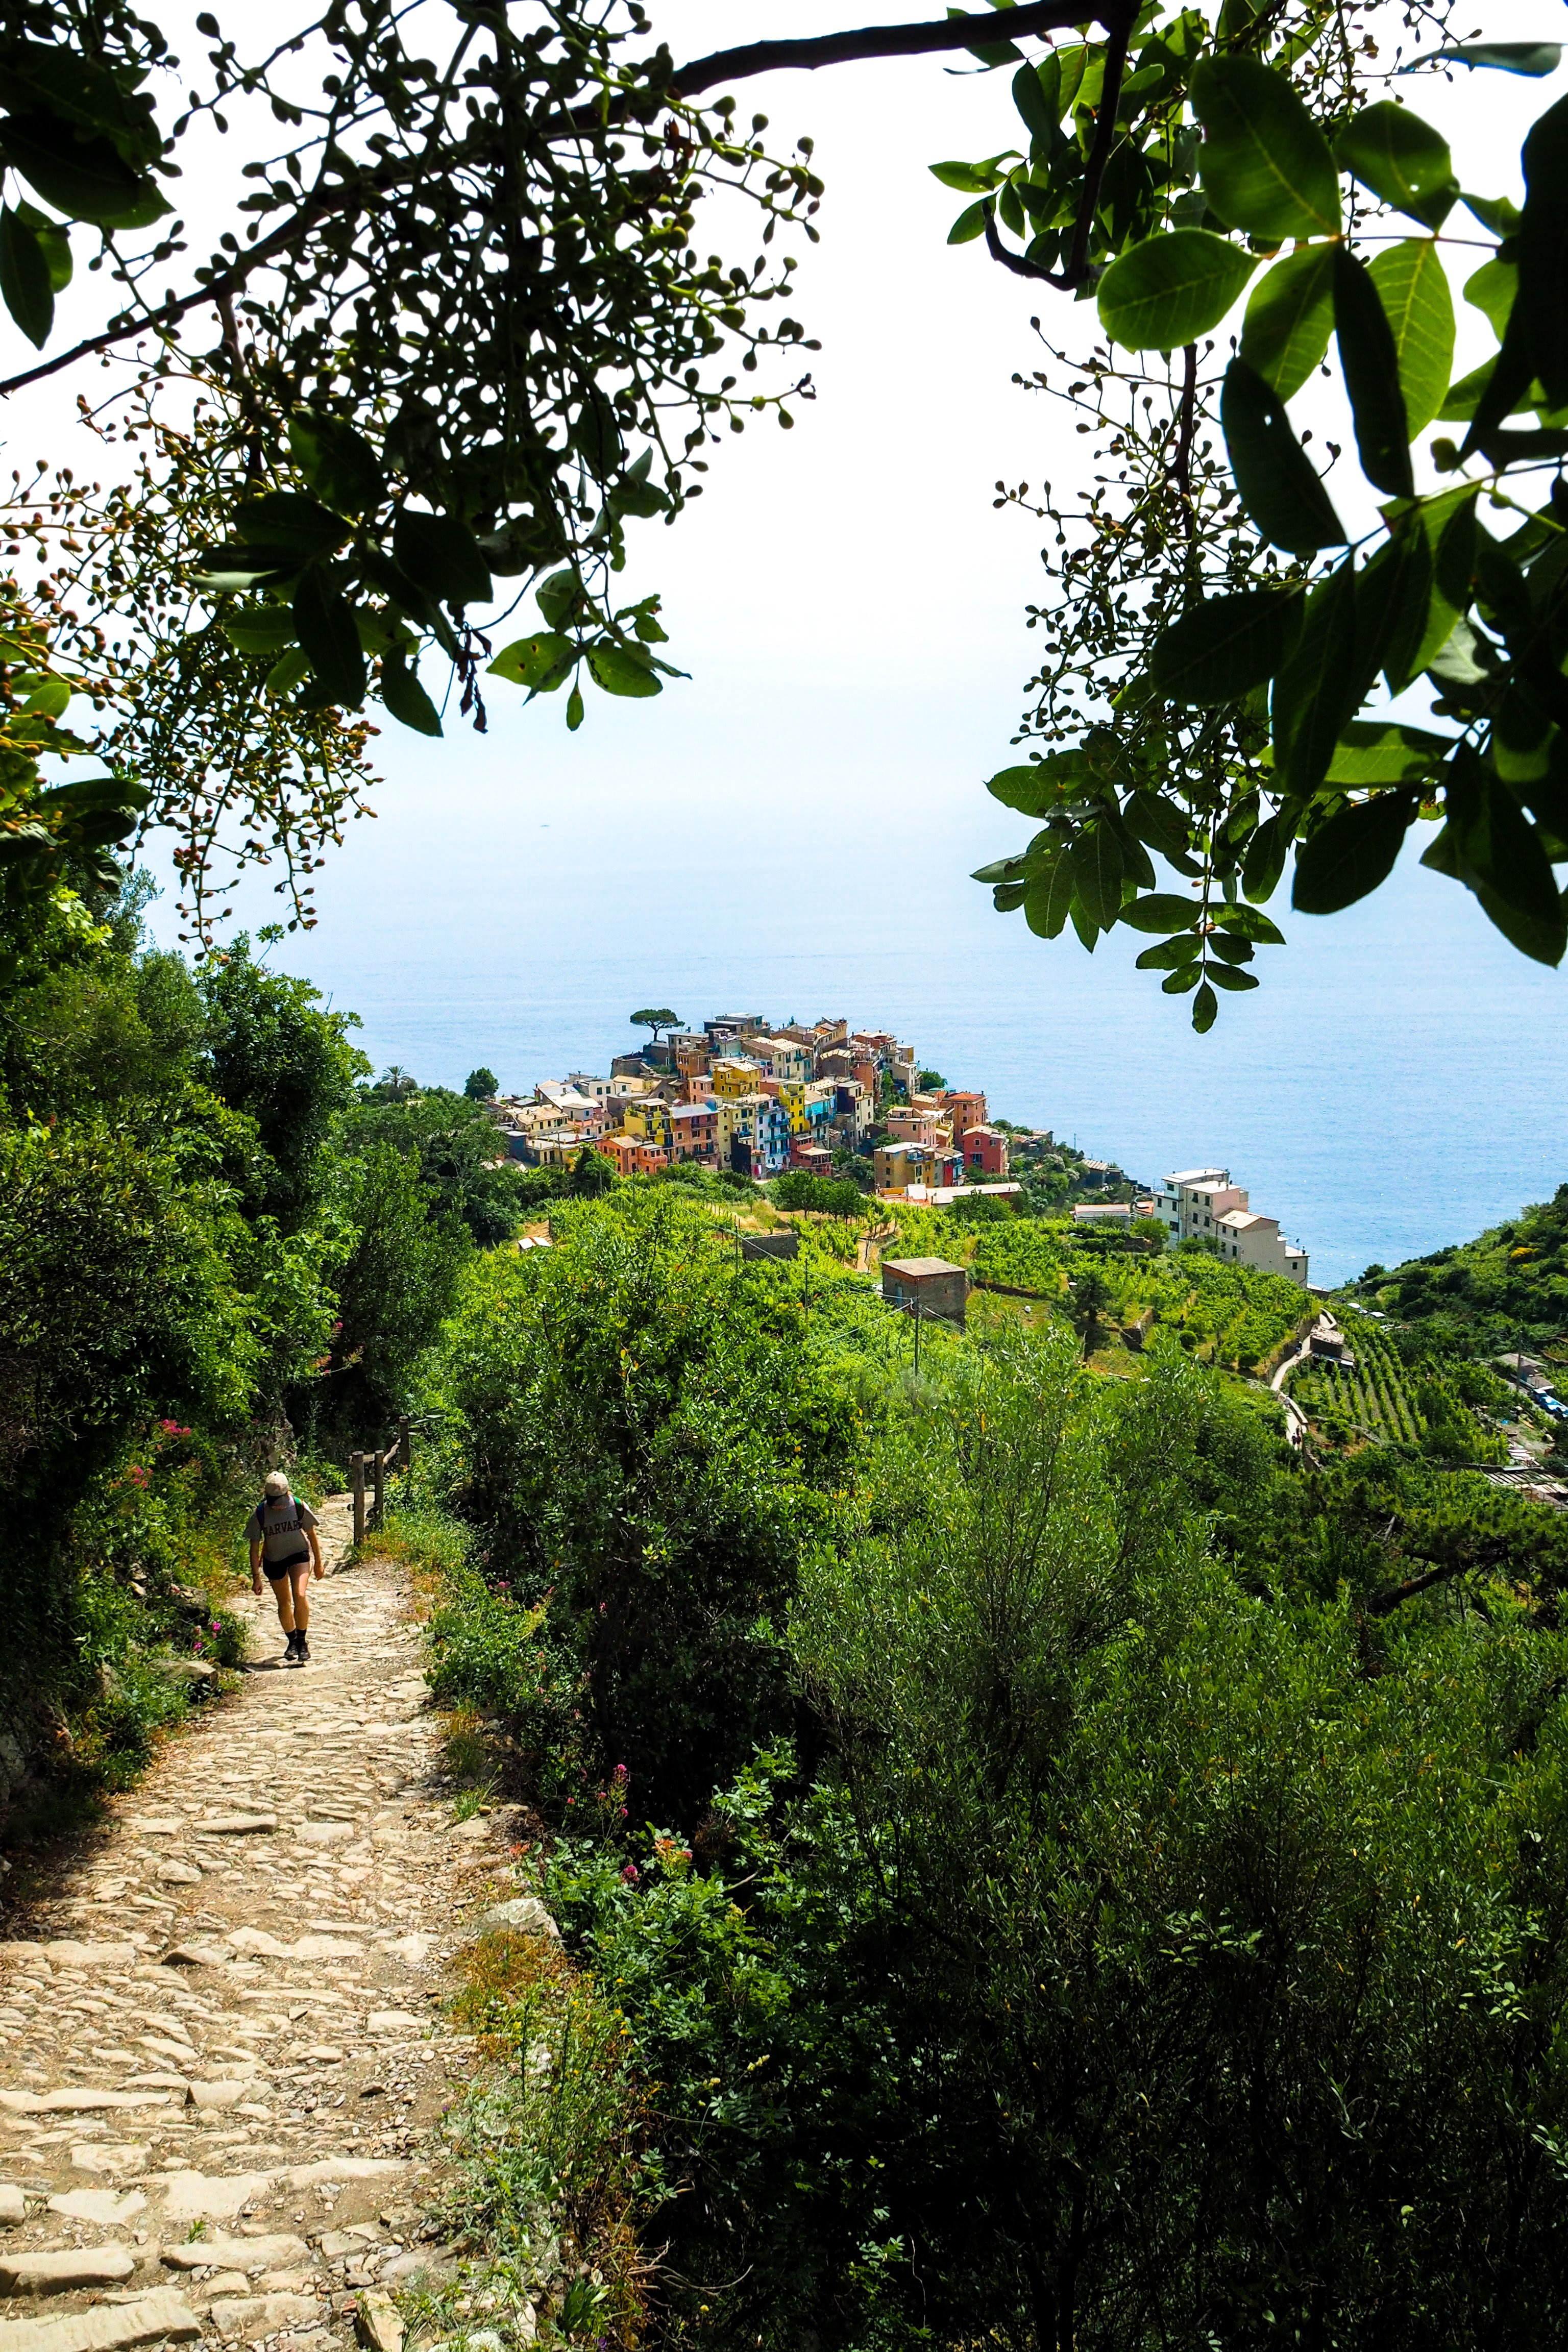 Hiking Cinque Terre on a Cycling and Photography Tour with Kevin Wenning and Intentionally Lost